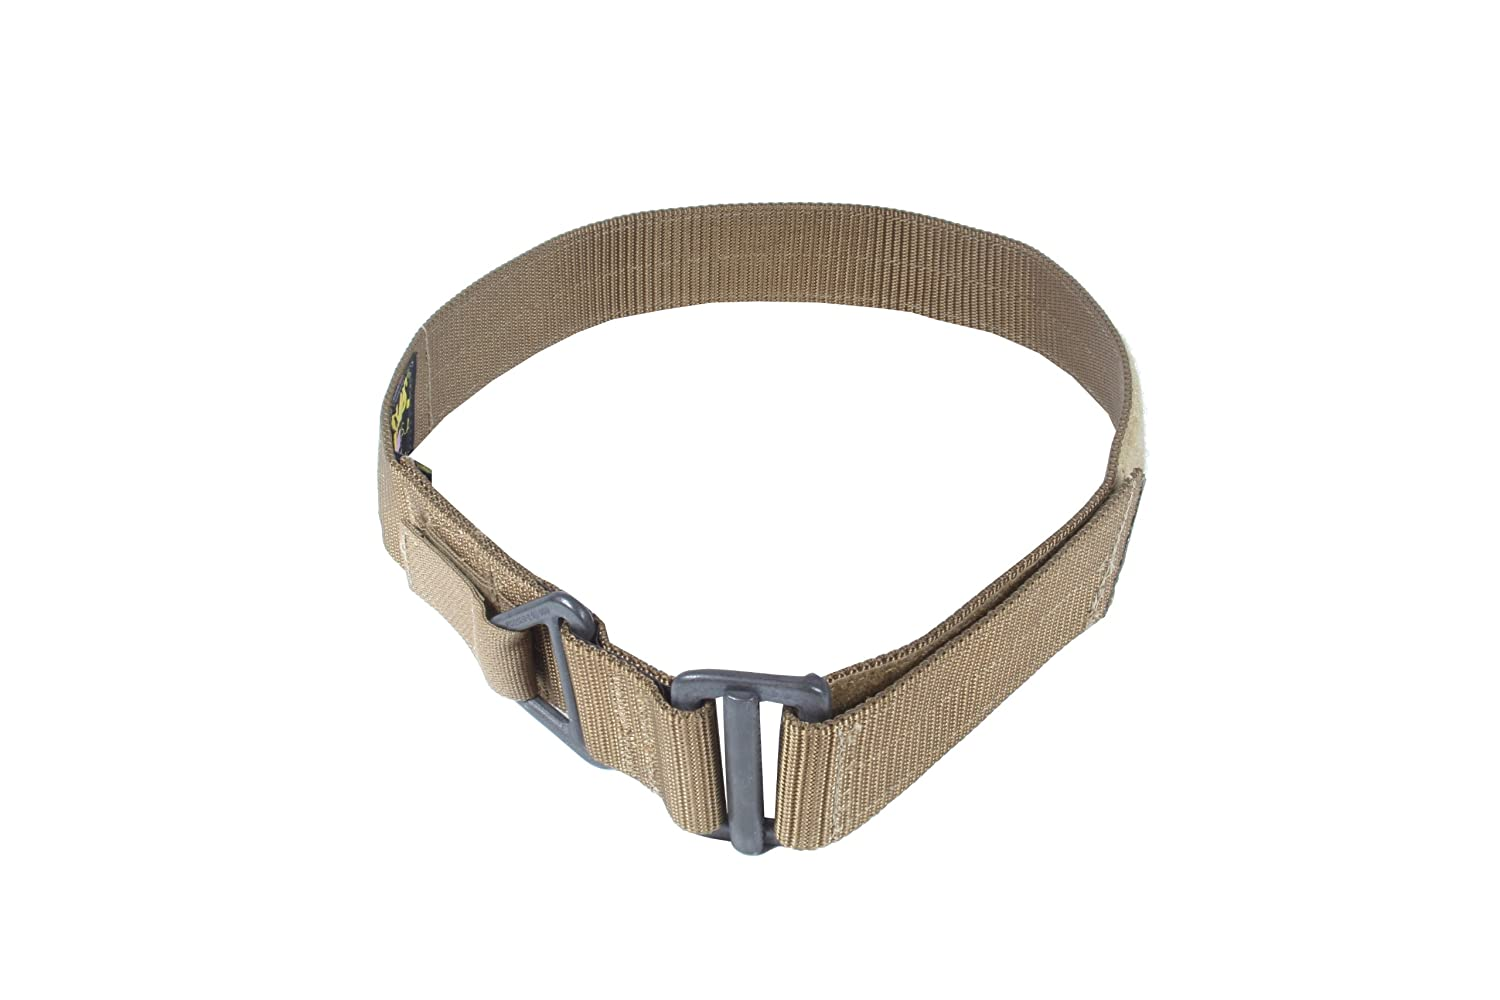 Best Rigger's Belts on the Market 2019 - Reviews and Top Picks